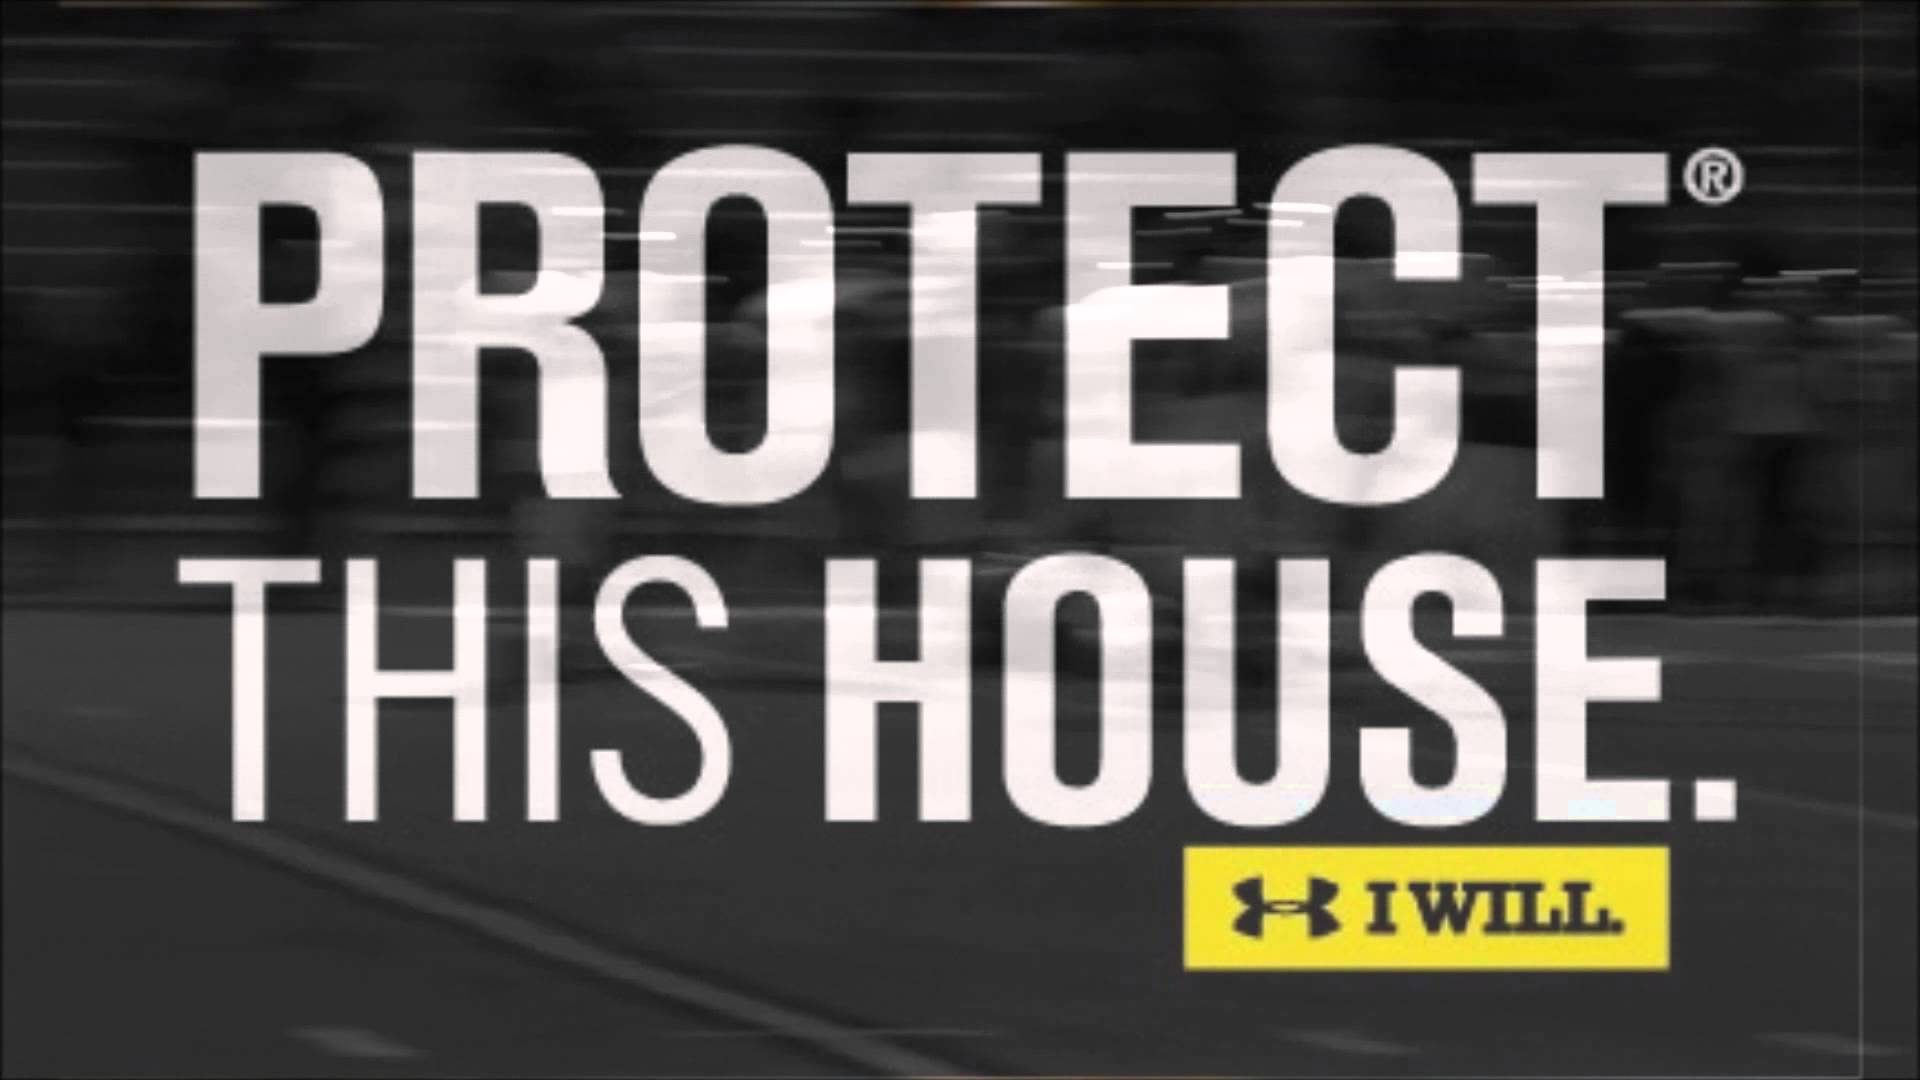 i will under armour wallpaper - photo #35